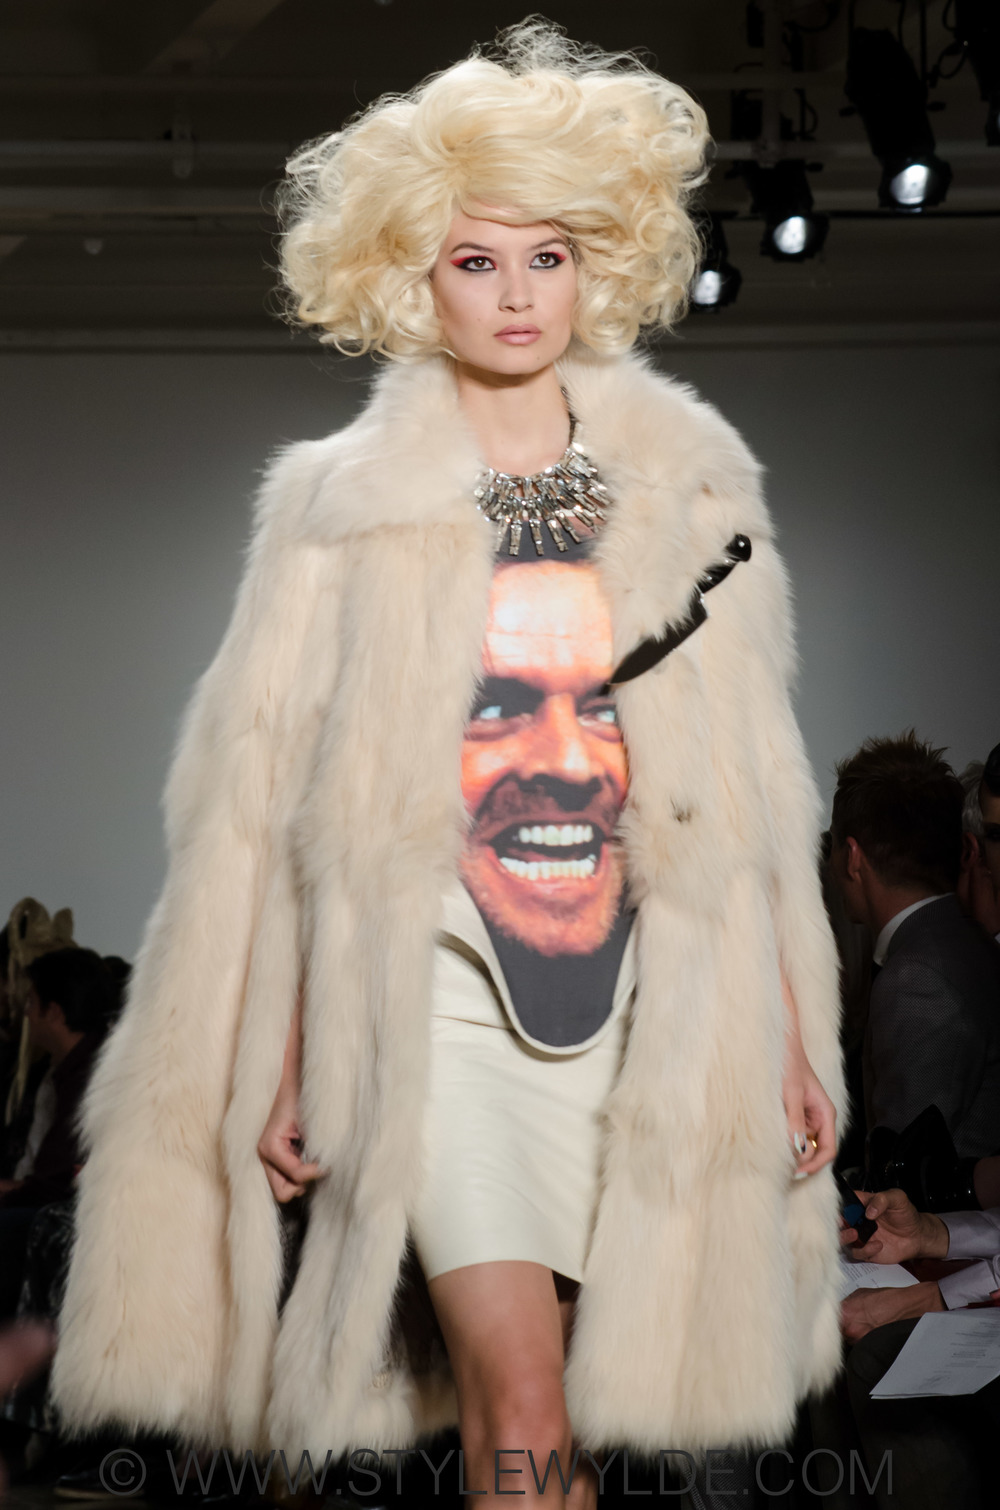 stylewylde_The_Blonds_FW_2013-8.jpg